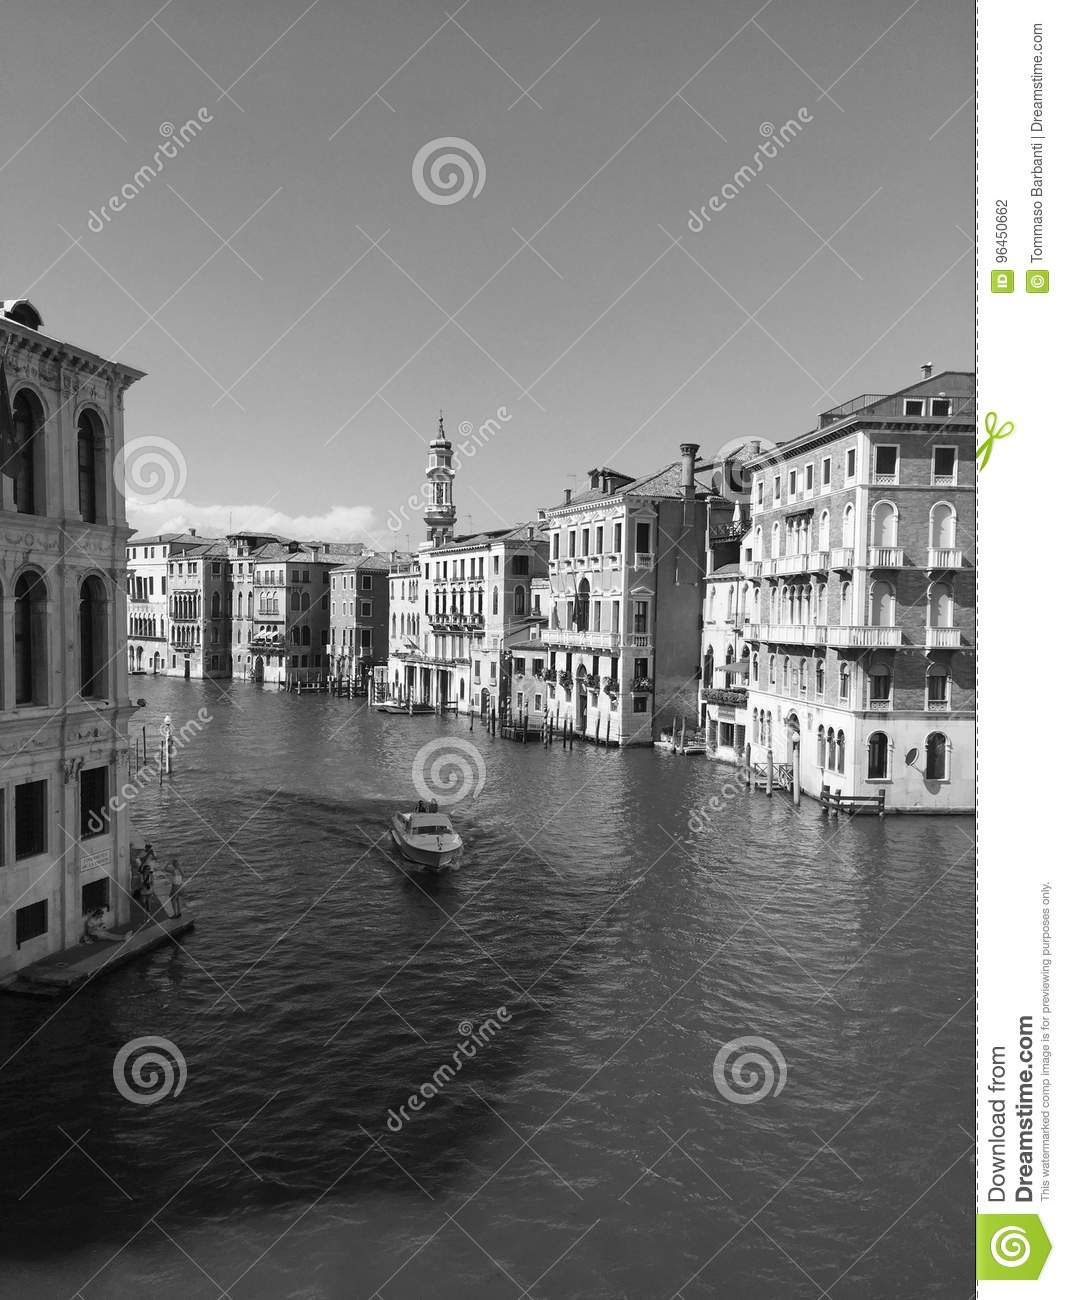 Black And White Postcard From >> Black And White Postcard From Venice Editorial Photography Image